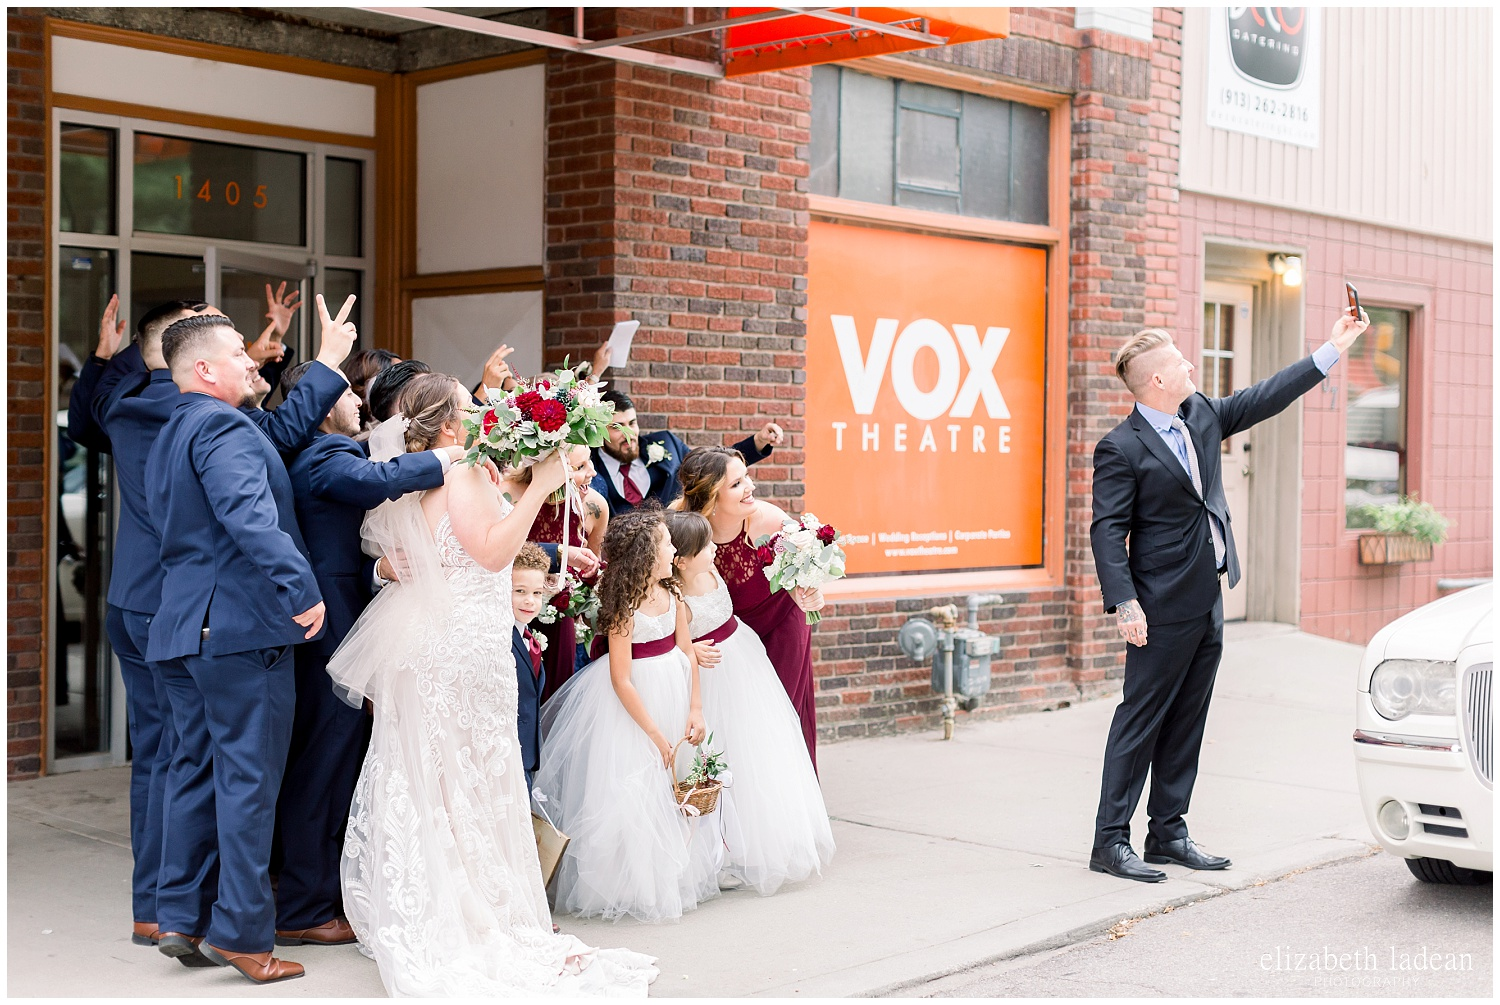 -behind-the-scenes-of-a-wedding-photographer-2018-elizabeth-ladean-photography-photo_3554.jpg